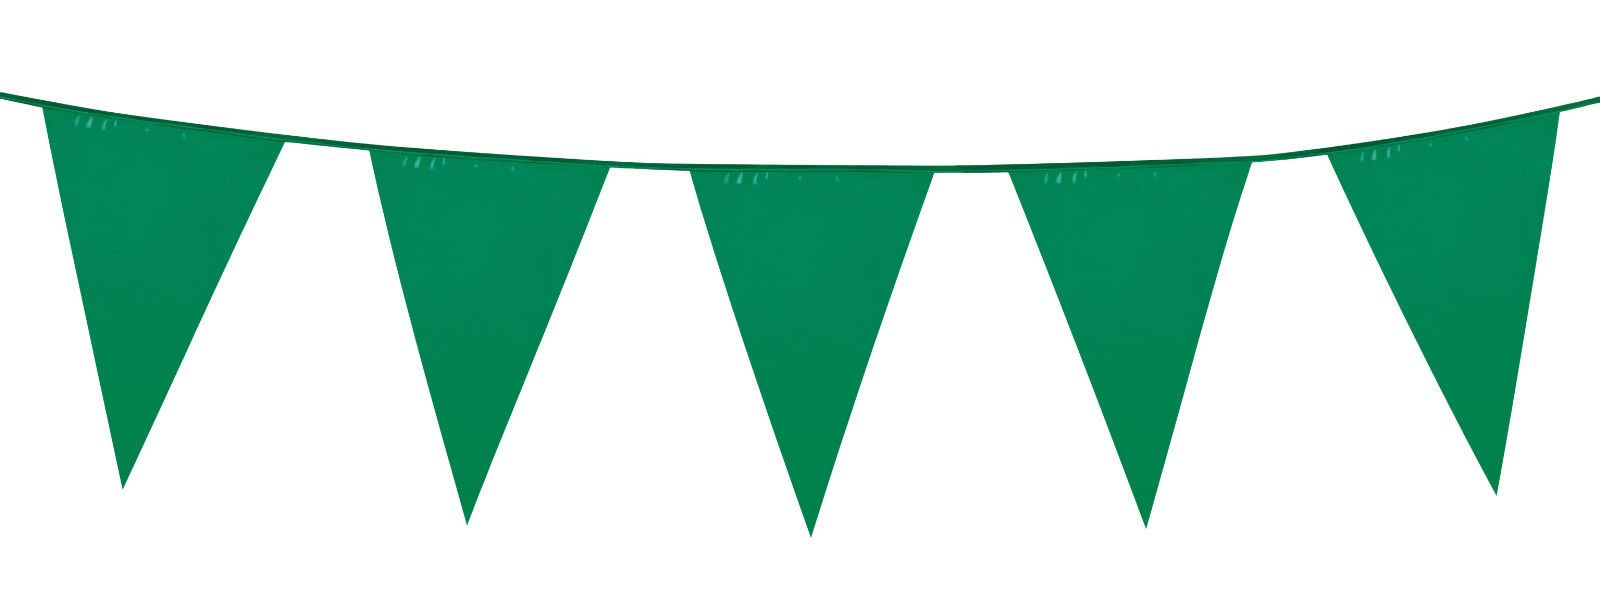 10m / 33FT LARGE COLOUR BUNTING FLAGS PENNANTS PARTY DECORATIONS.